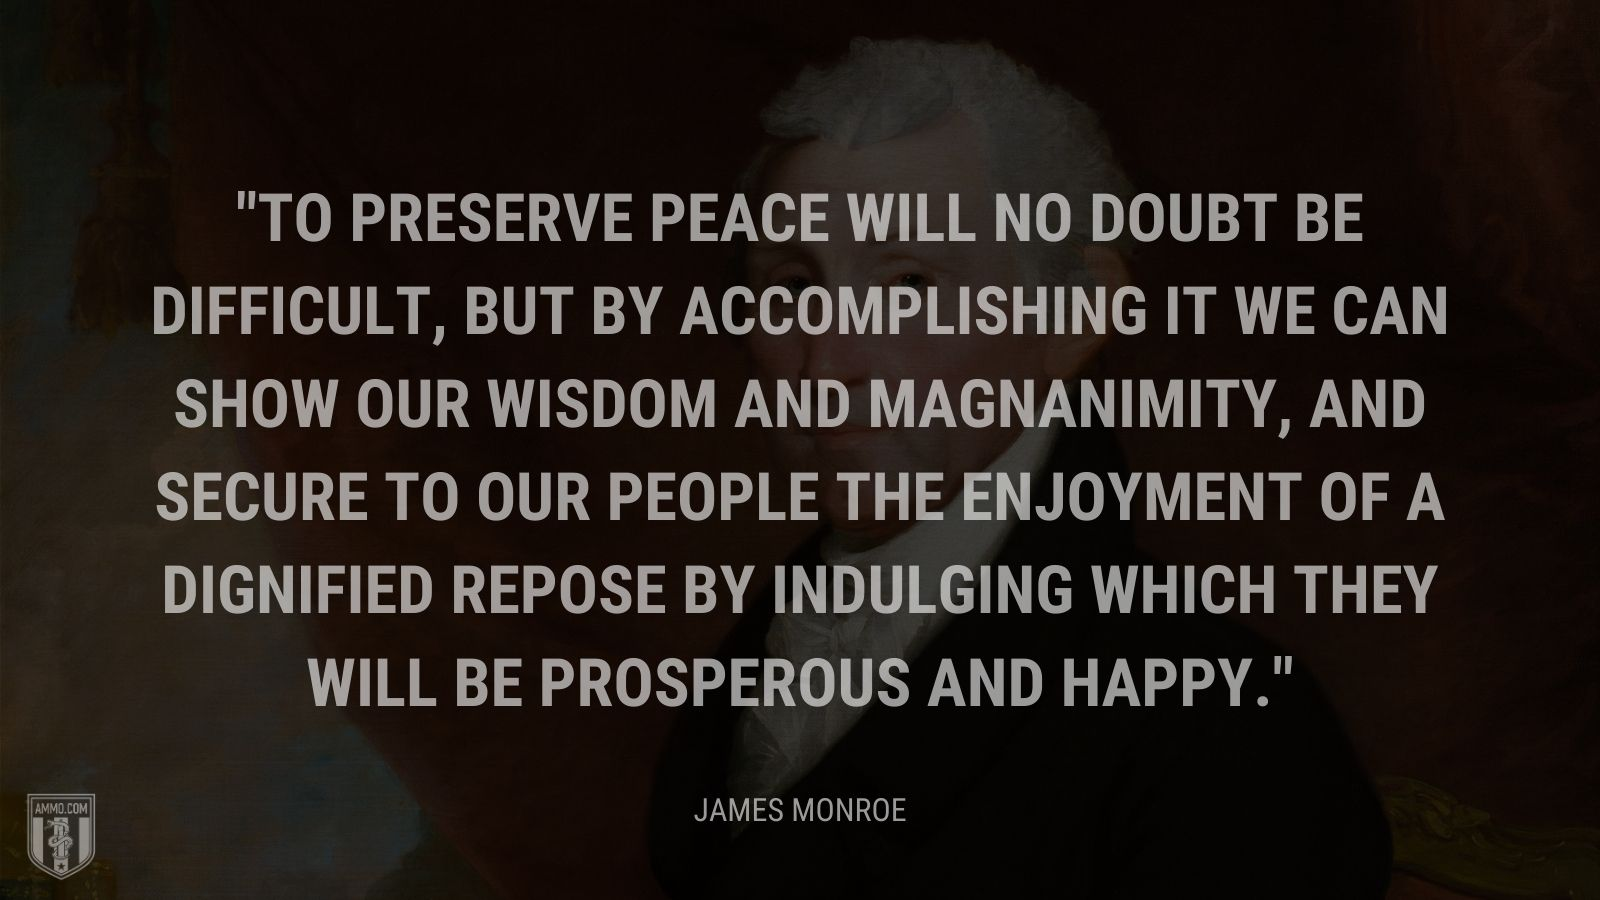 """To preserve peace will no doubt be difficult, but by accomplishing it we can show our wisdom and magnanimity, and secure to our people the enjoyment of a dignified repose by indulging which they will be prosperous and happy."" - James Monroe"